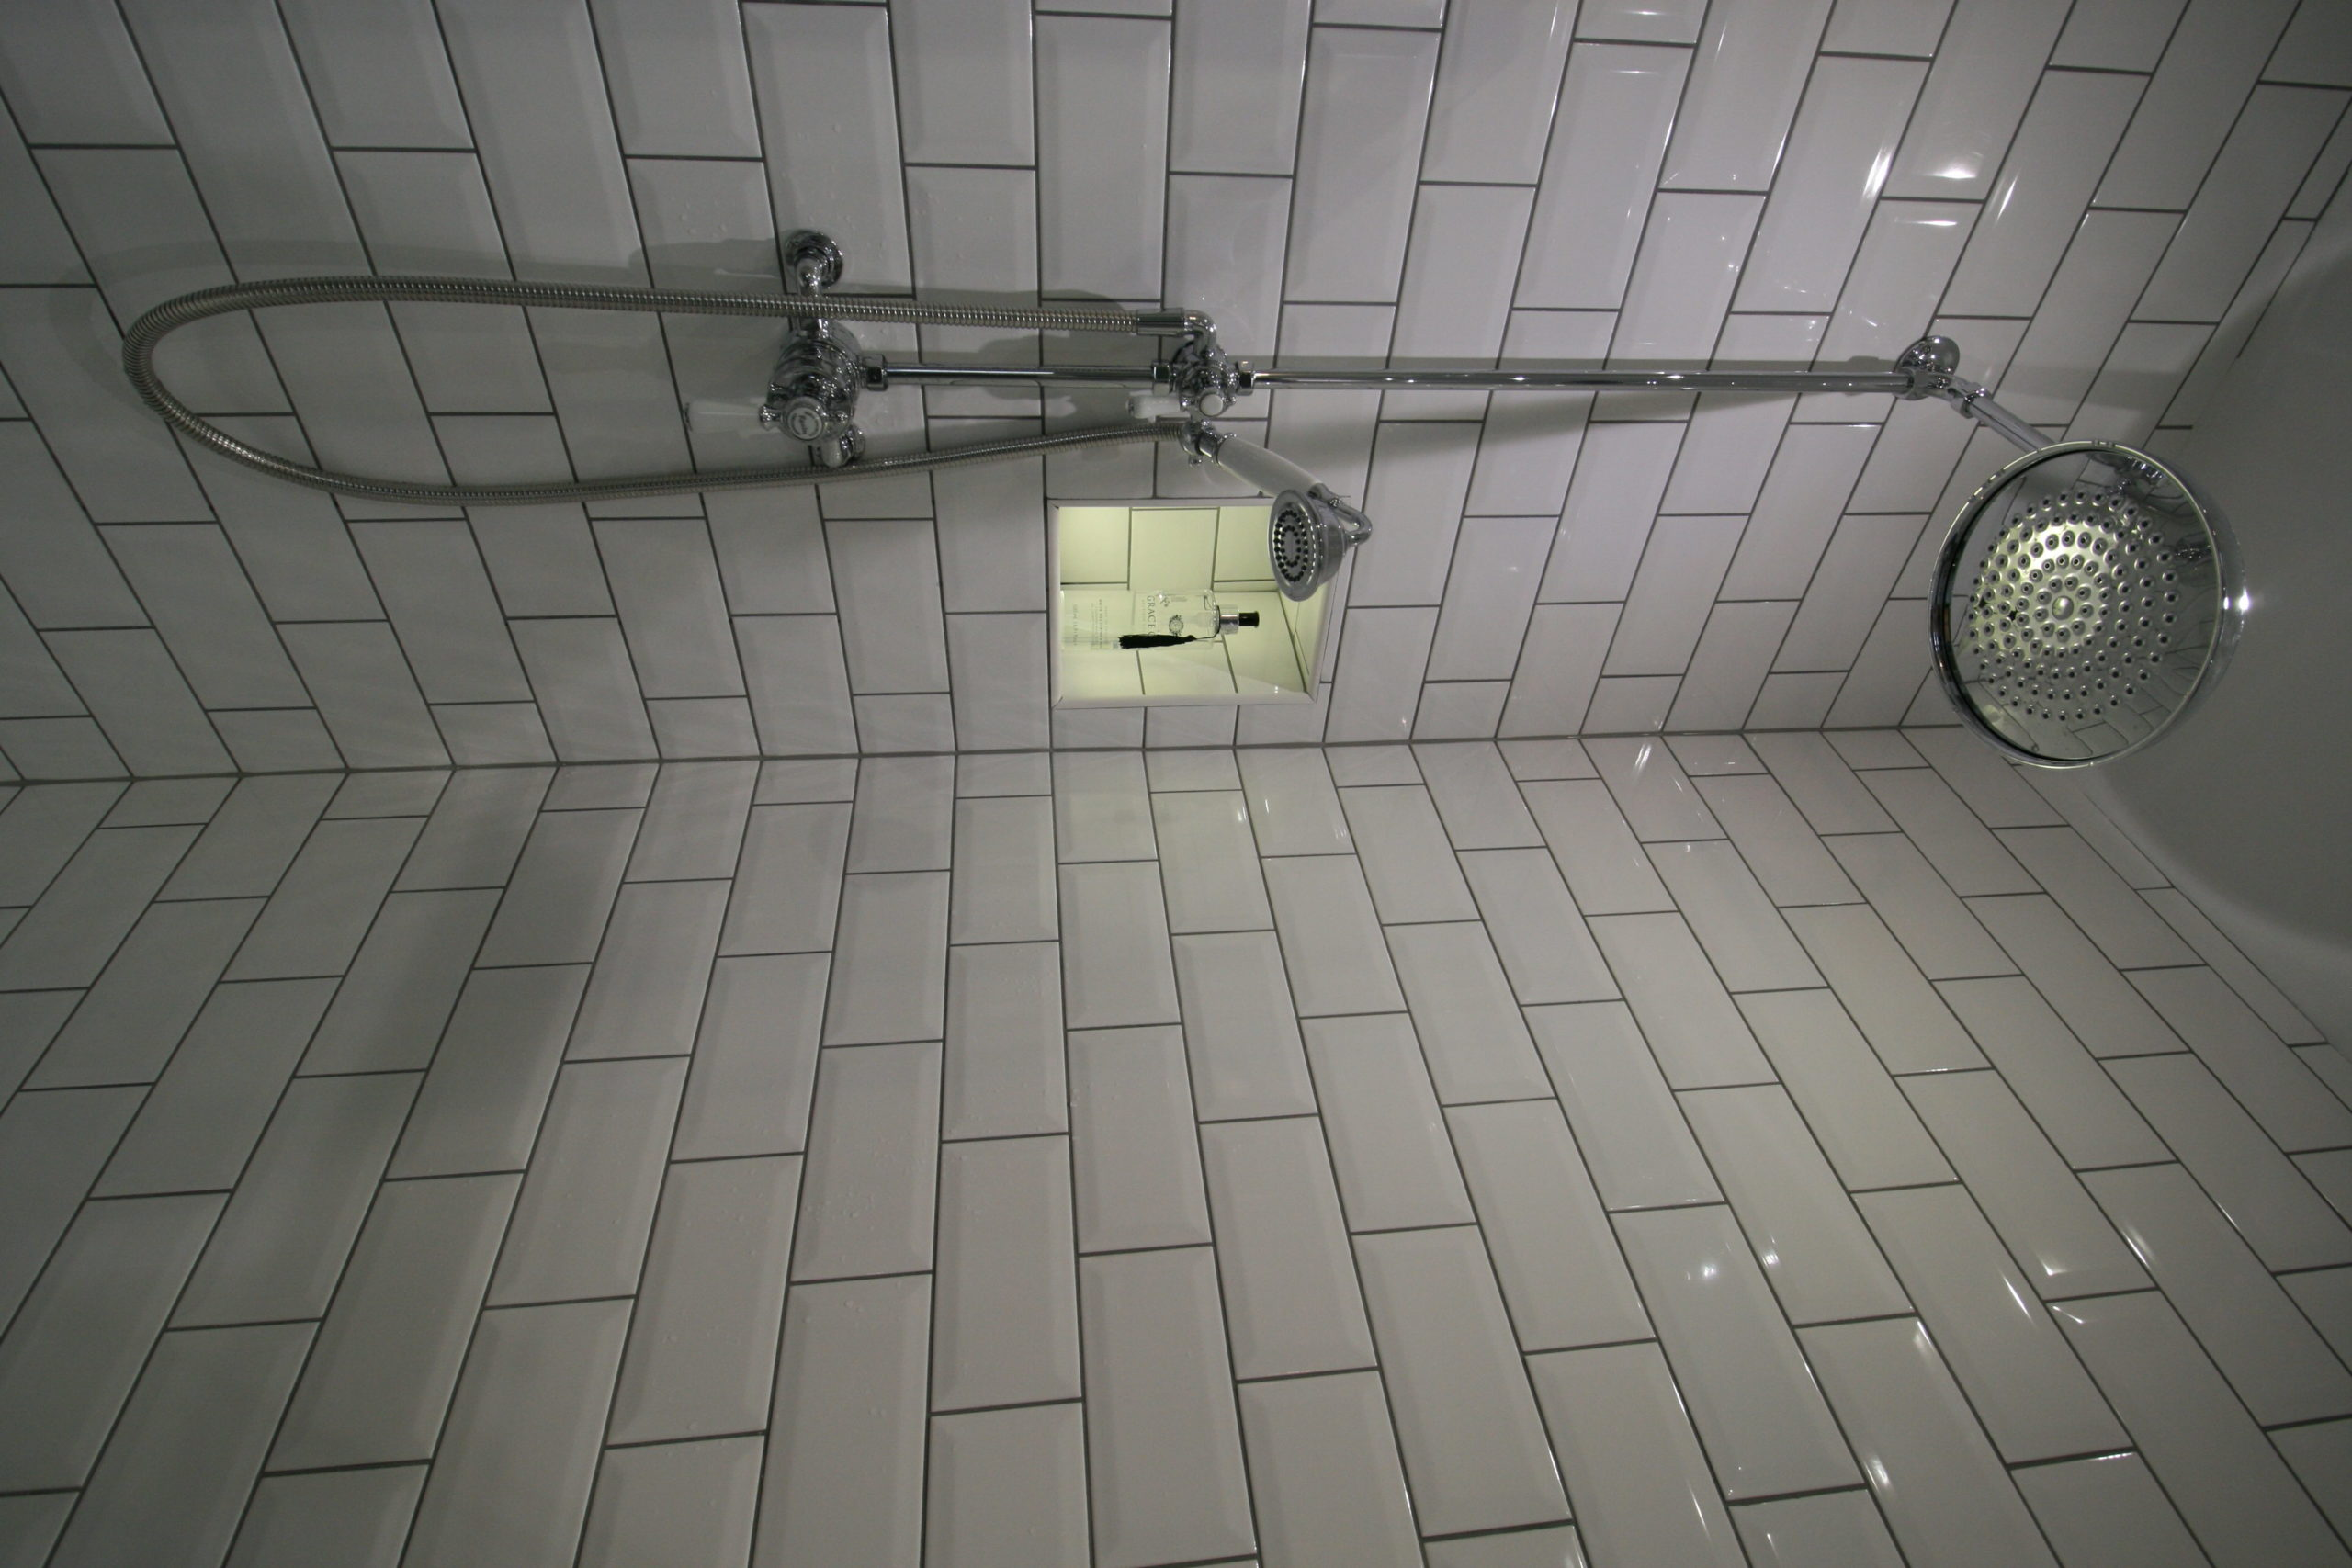 Bathroom - lighting in shower enclosure